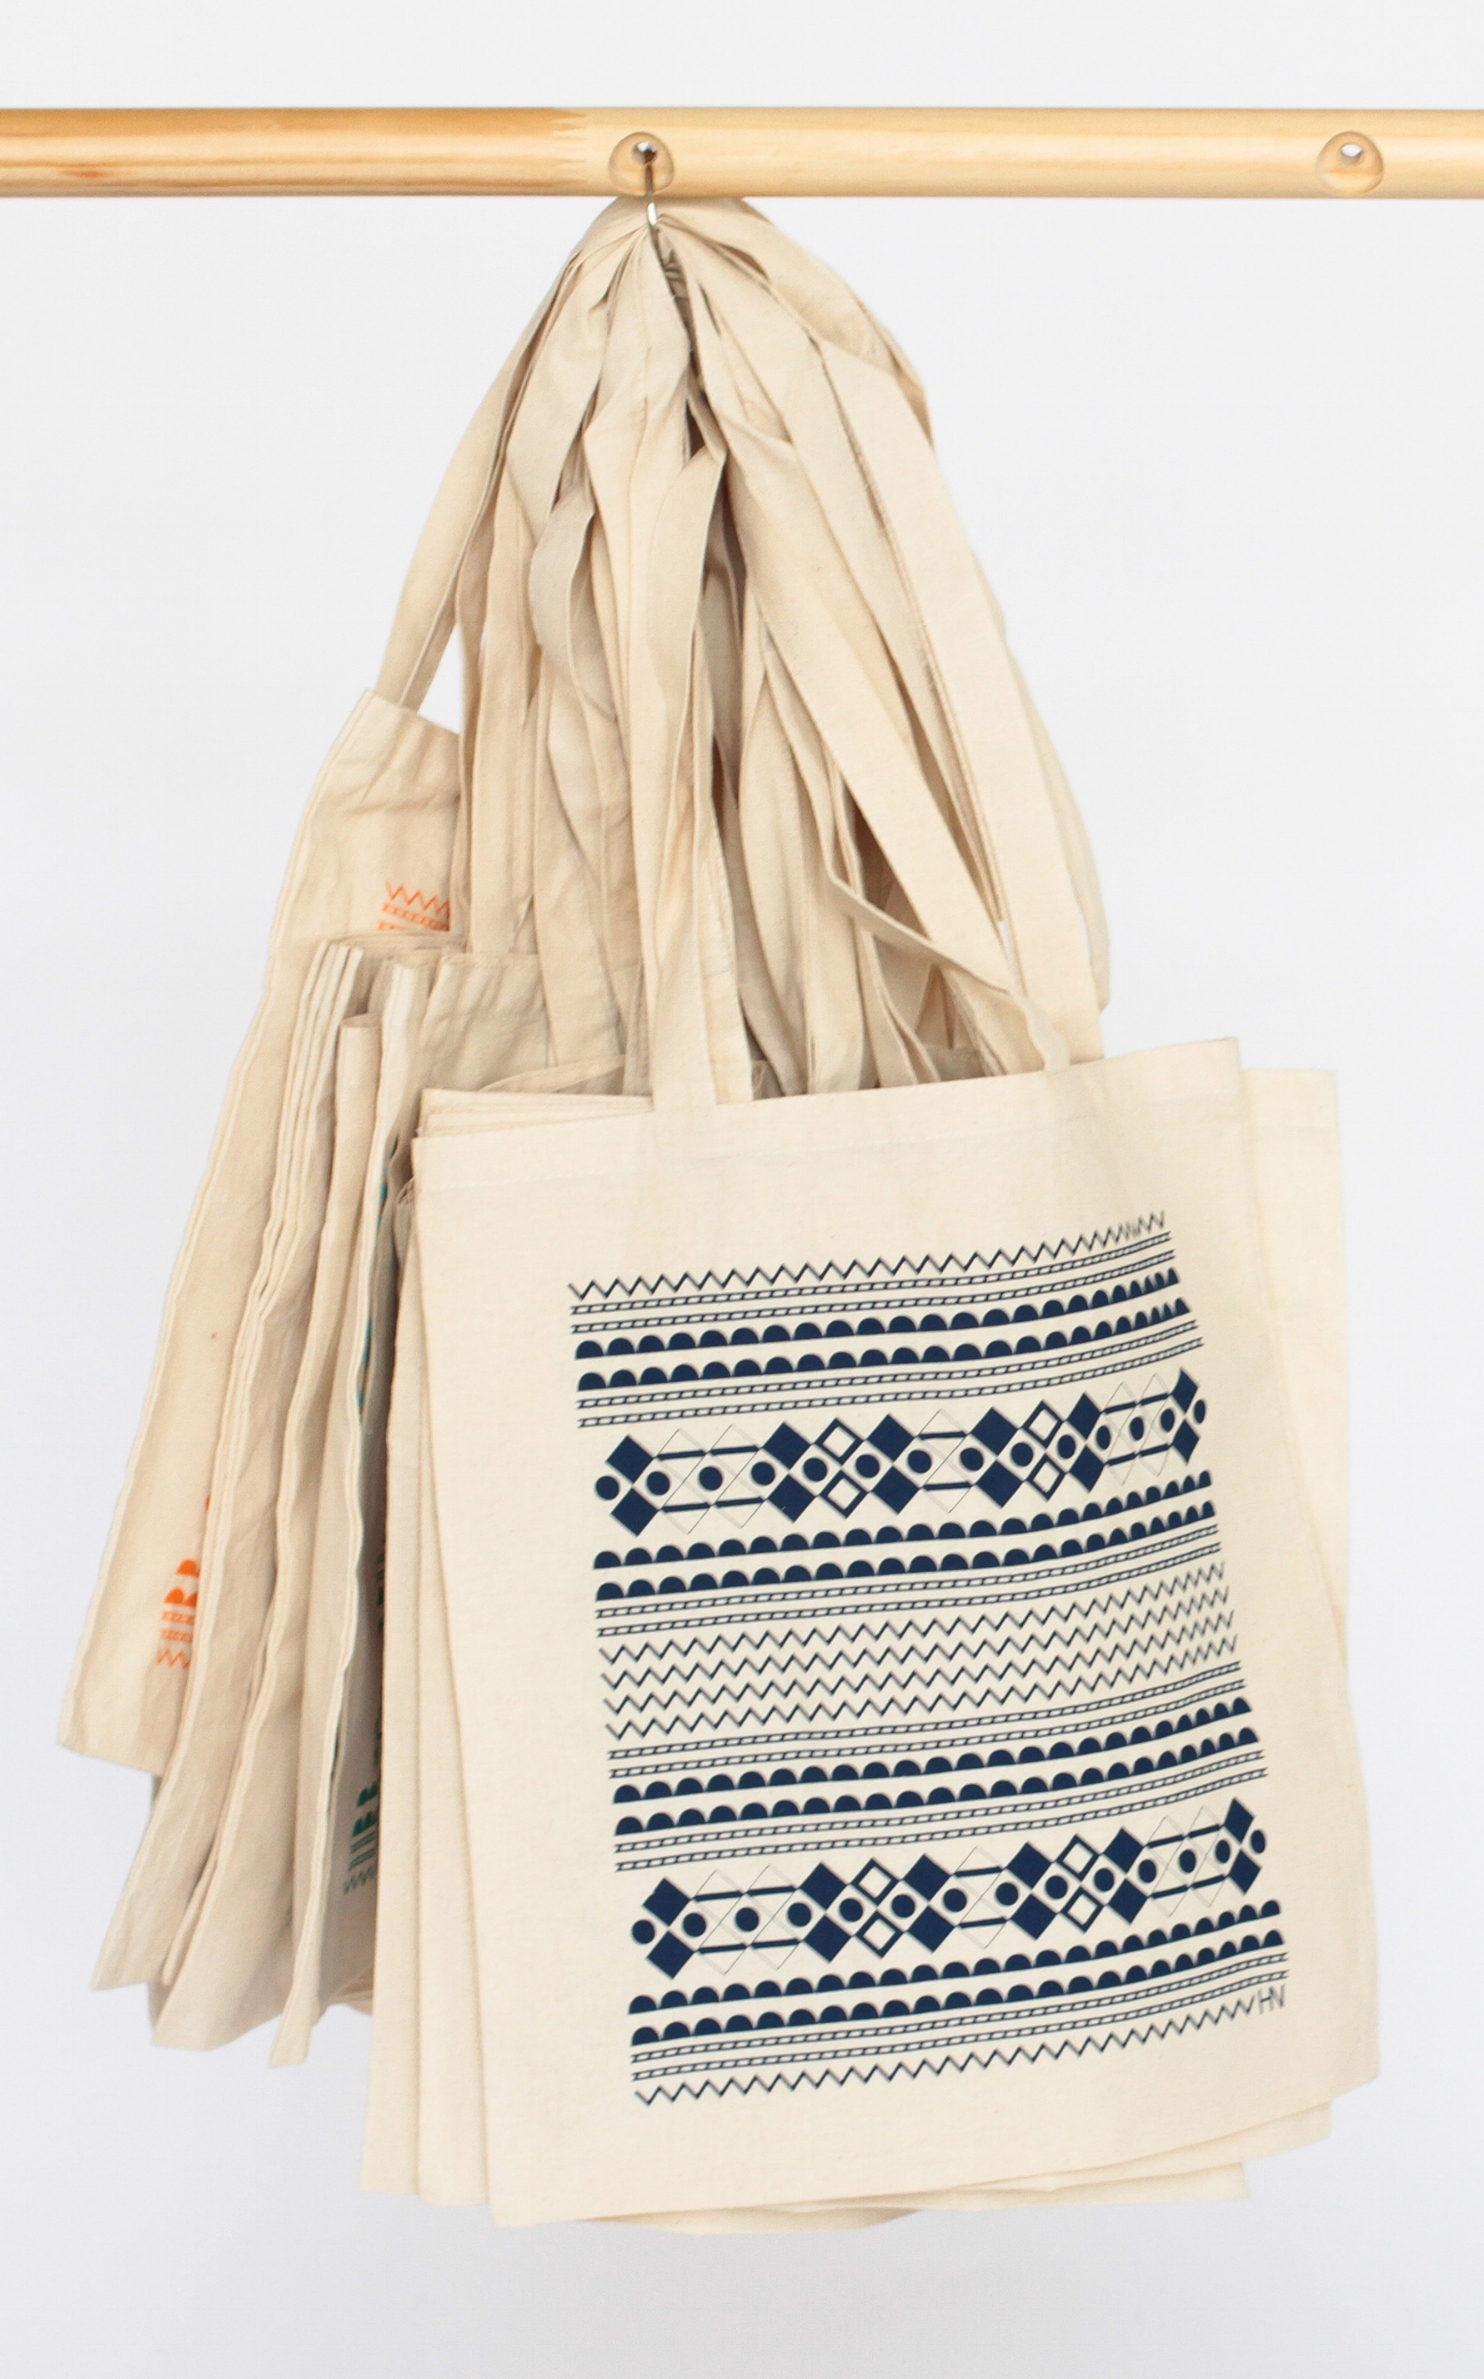 00-HN-Product-Tote-Bag-005.jpg